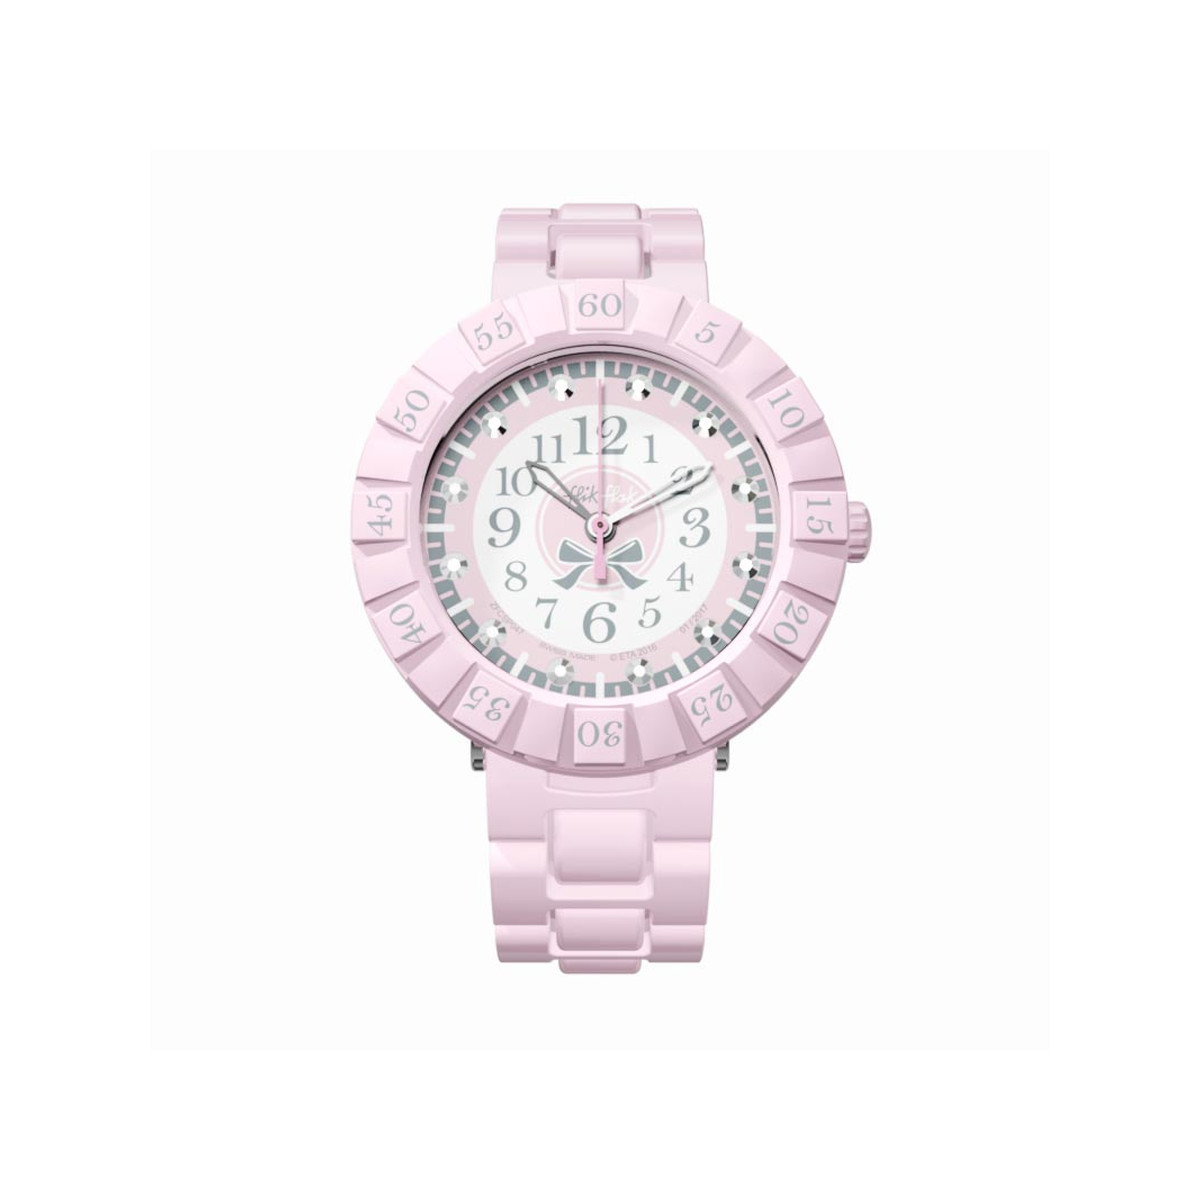 Montre Flik Flak fille Pretty Rose - vue 1